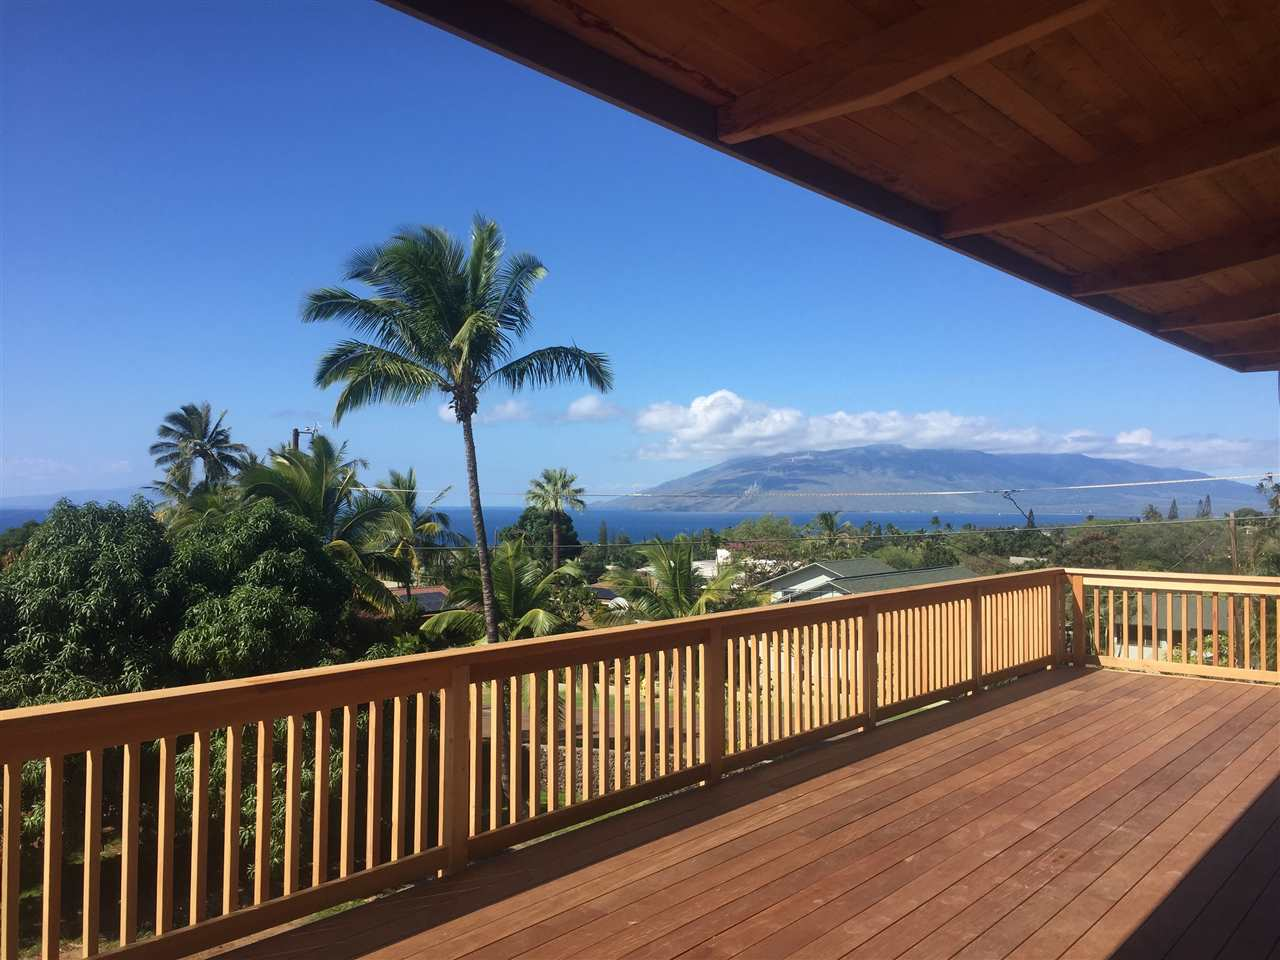 3408 Kuaua Pl in Maui Meadows